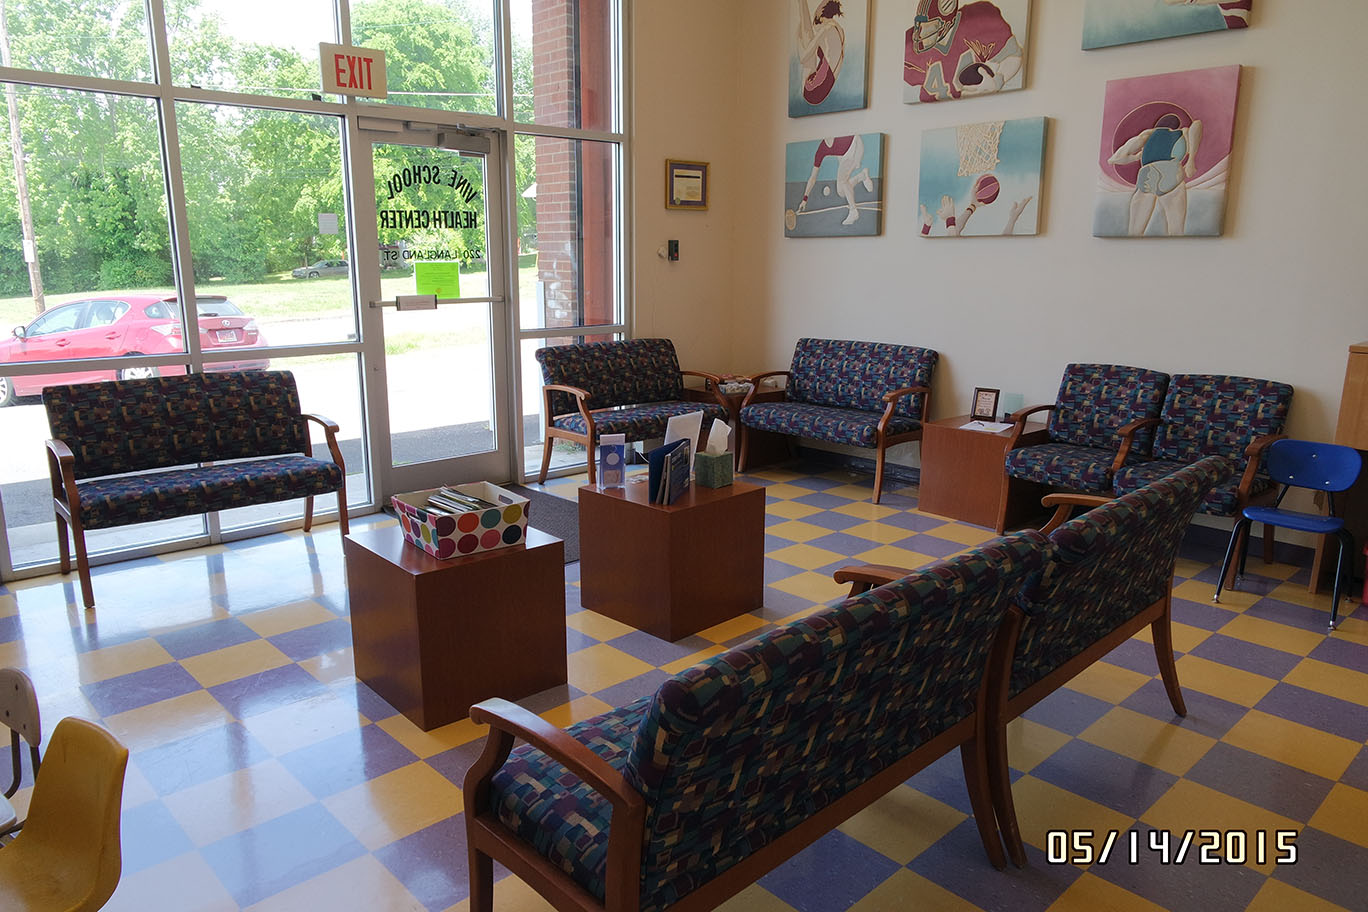 Students Waiting Room